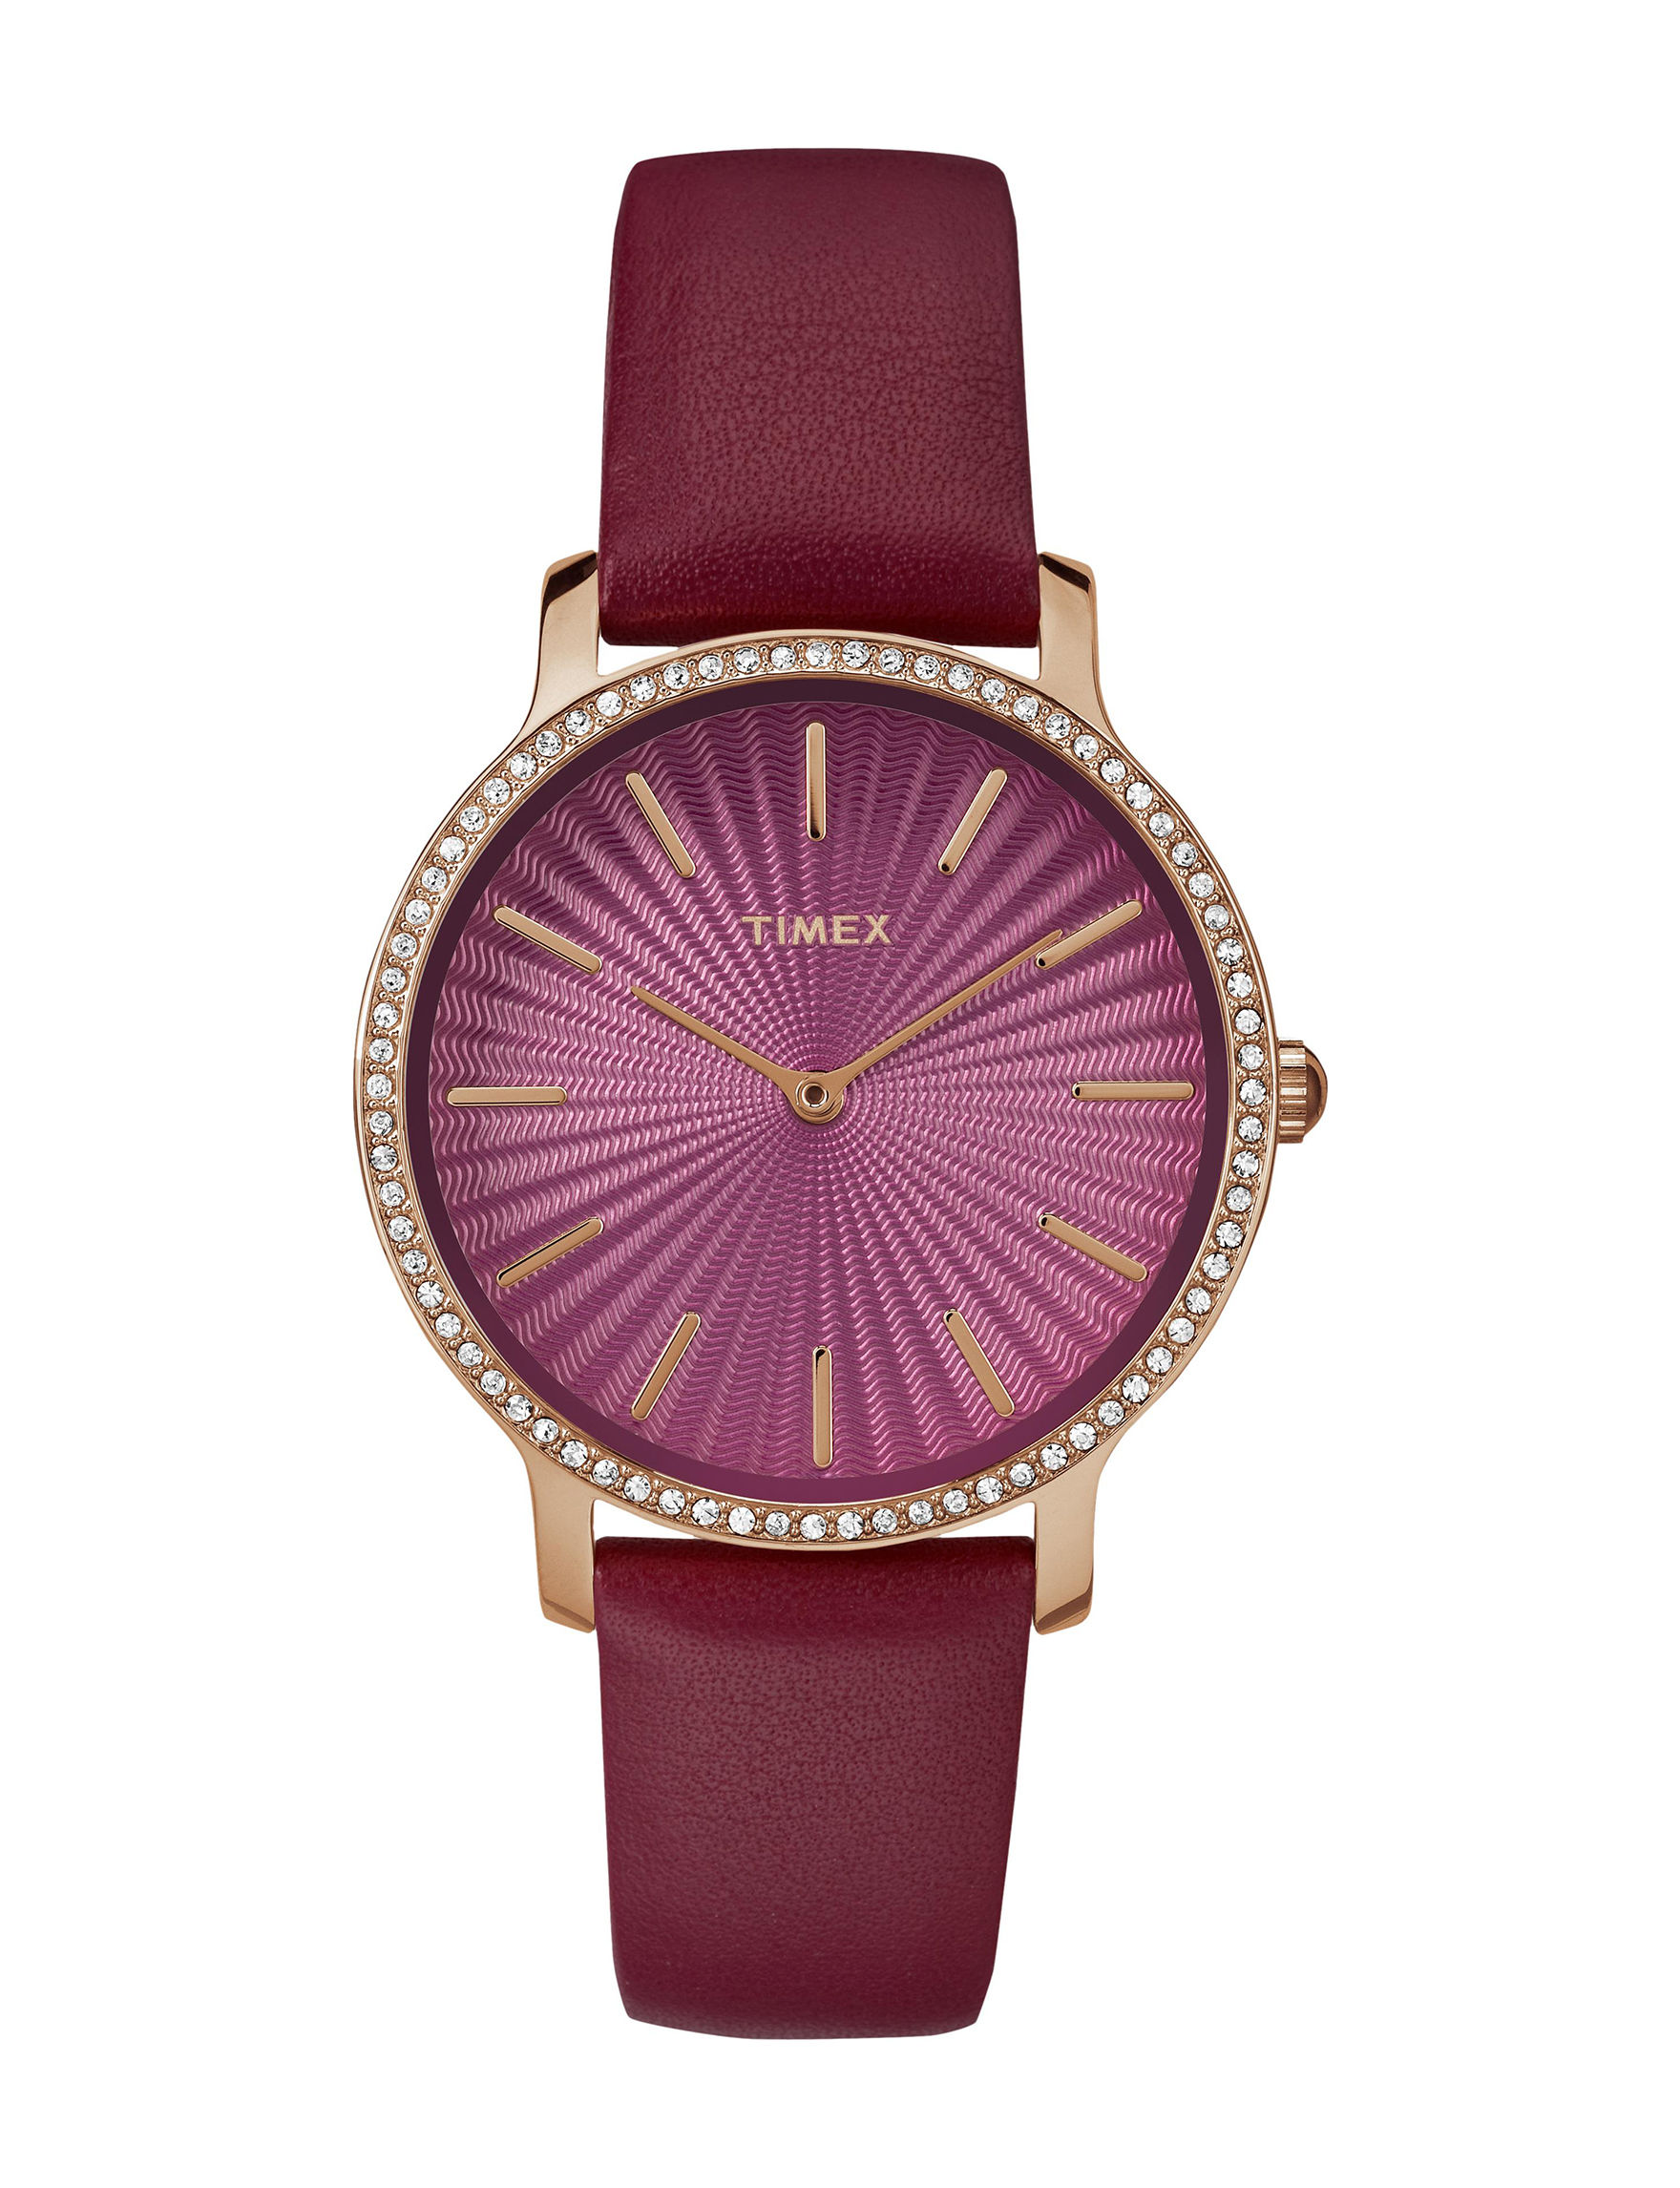 Timex Burgundy Fashion Watches